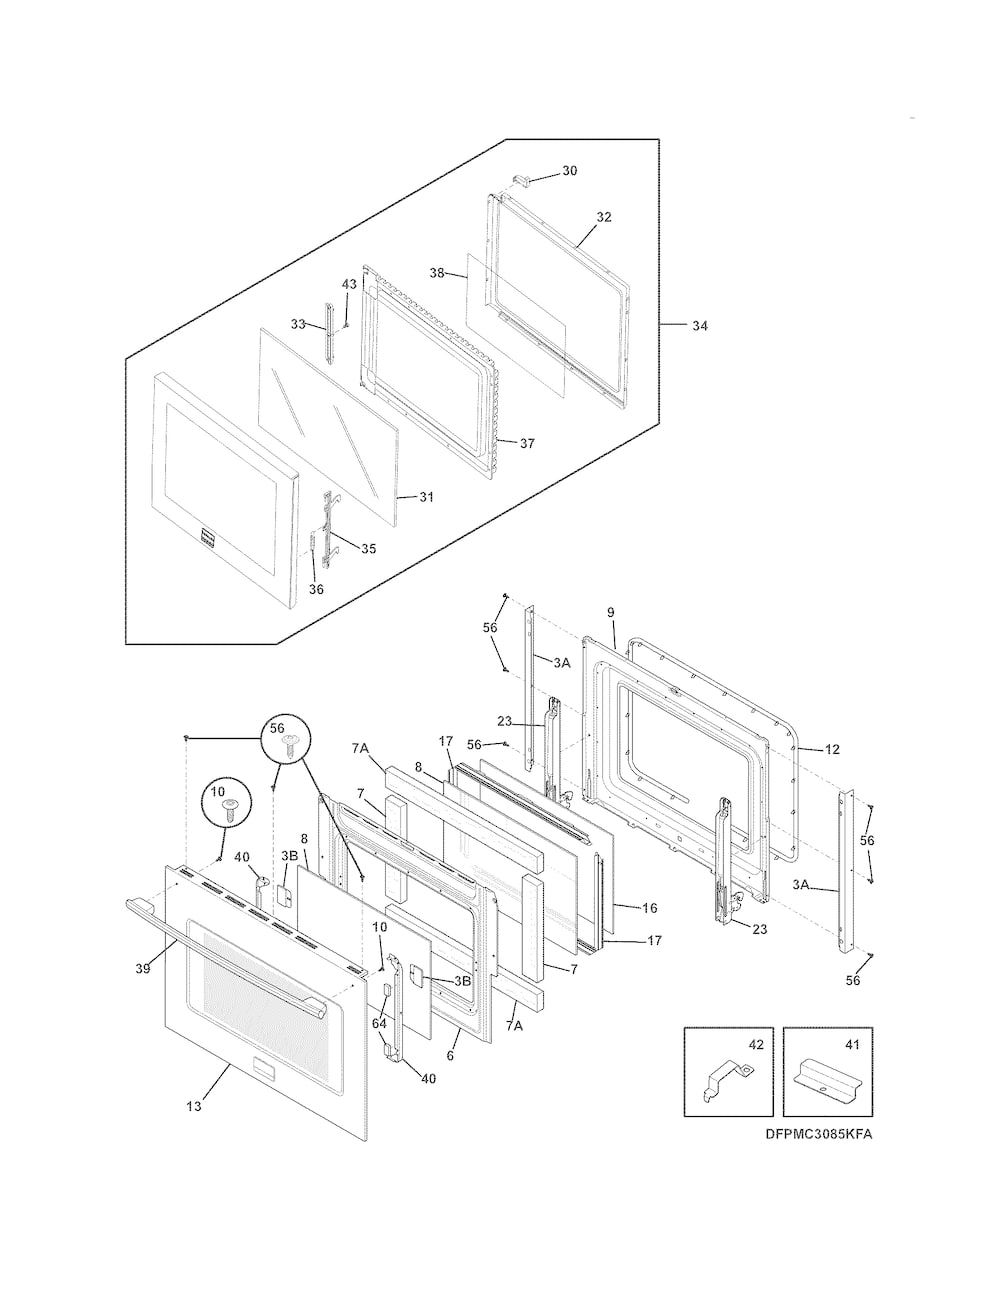 Shop for frigidaire wallovenmicrowave combo repair parts